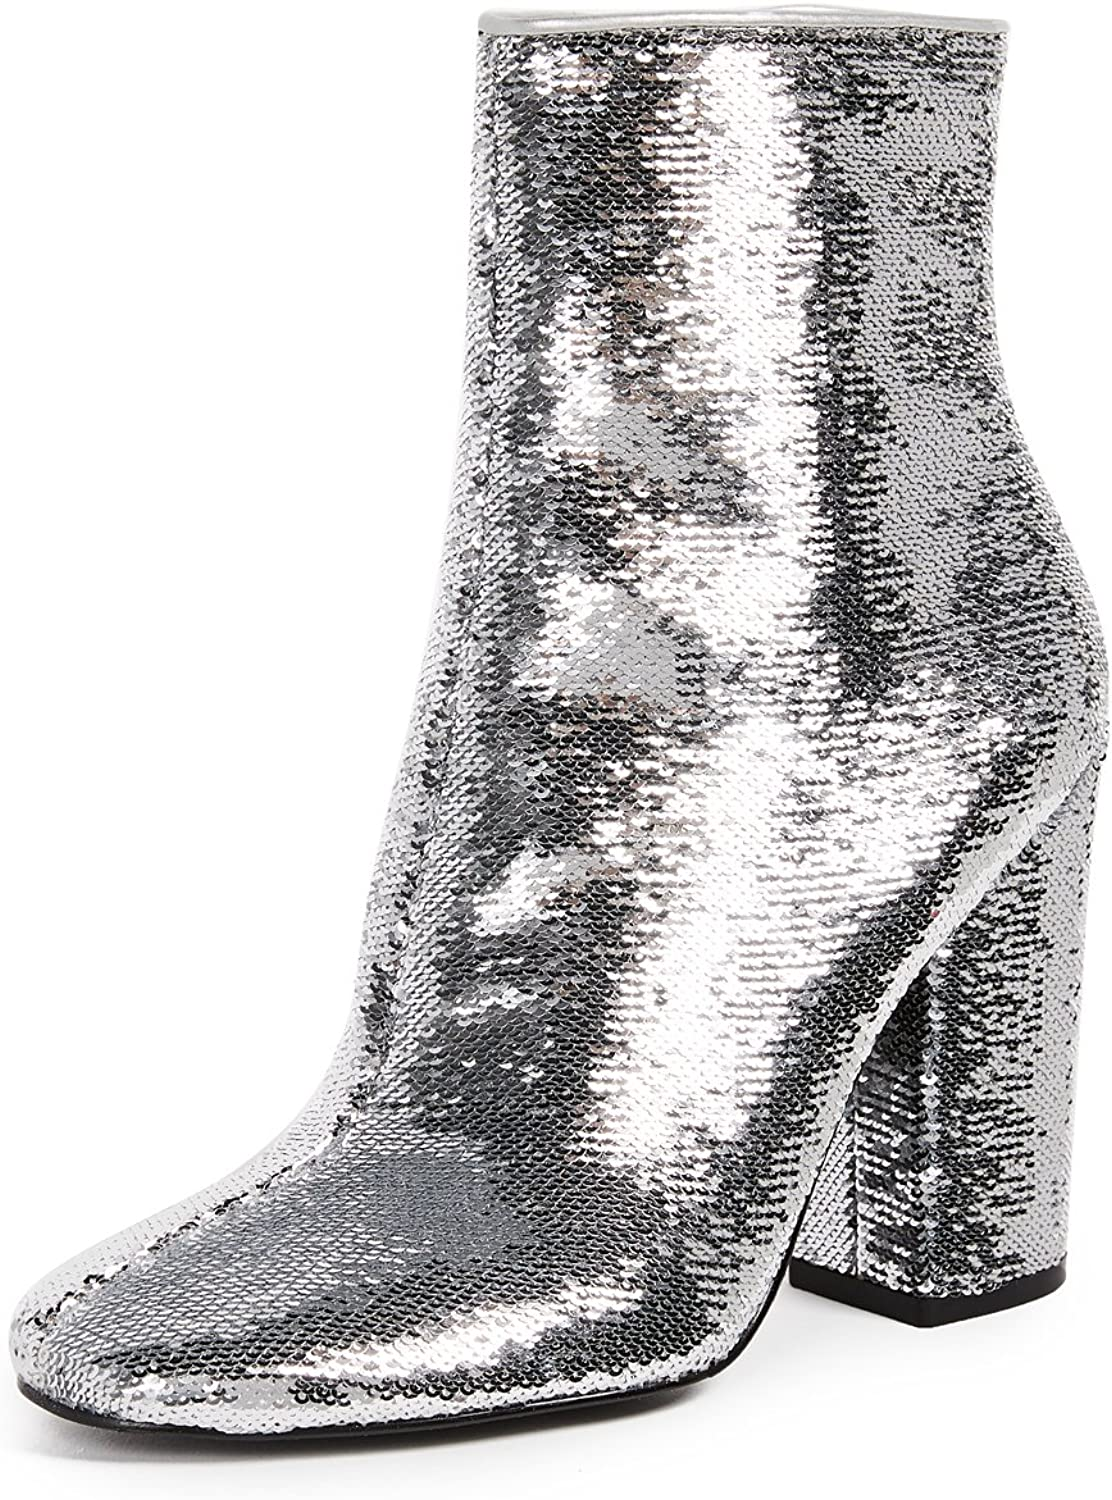 KENDALL + KYLIE Womens Haedyn5 Sequined Block Heel Booties